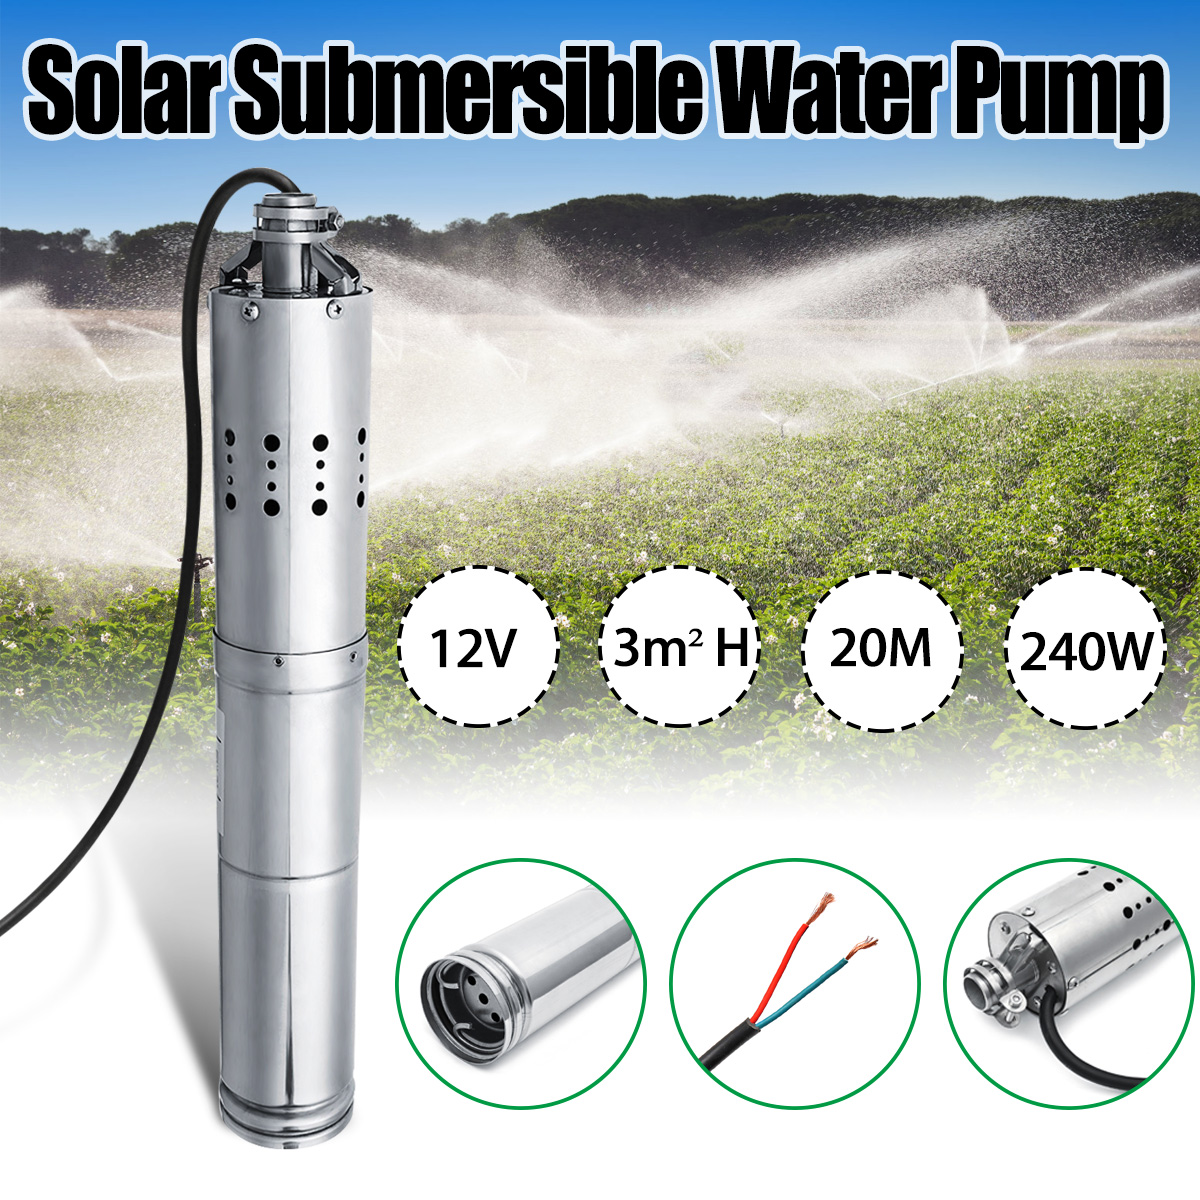 Wolike DC 12V 3m3/h 20m Submersible Brushless Stainless Screw Solar Power Submersible Deep Well Water Pump w/Internal ControllerWolike DC 12V 3m3/h 20m Submersible Brushless Stainless Screw Solar Power Submersible Deep Well Water Pump w/Internal Controller